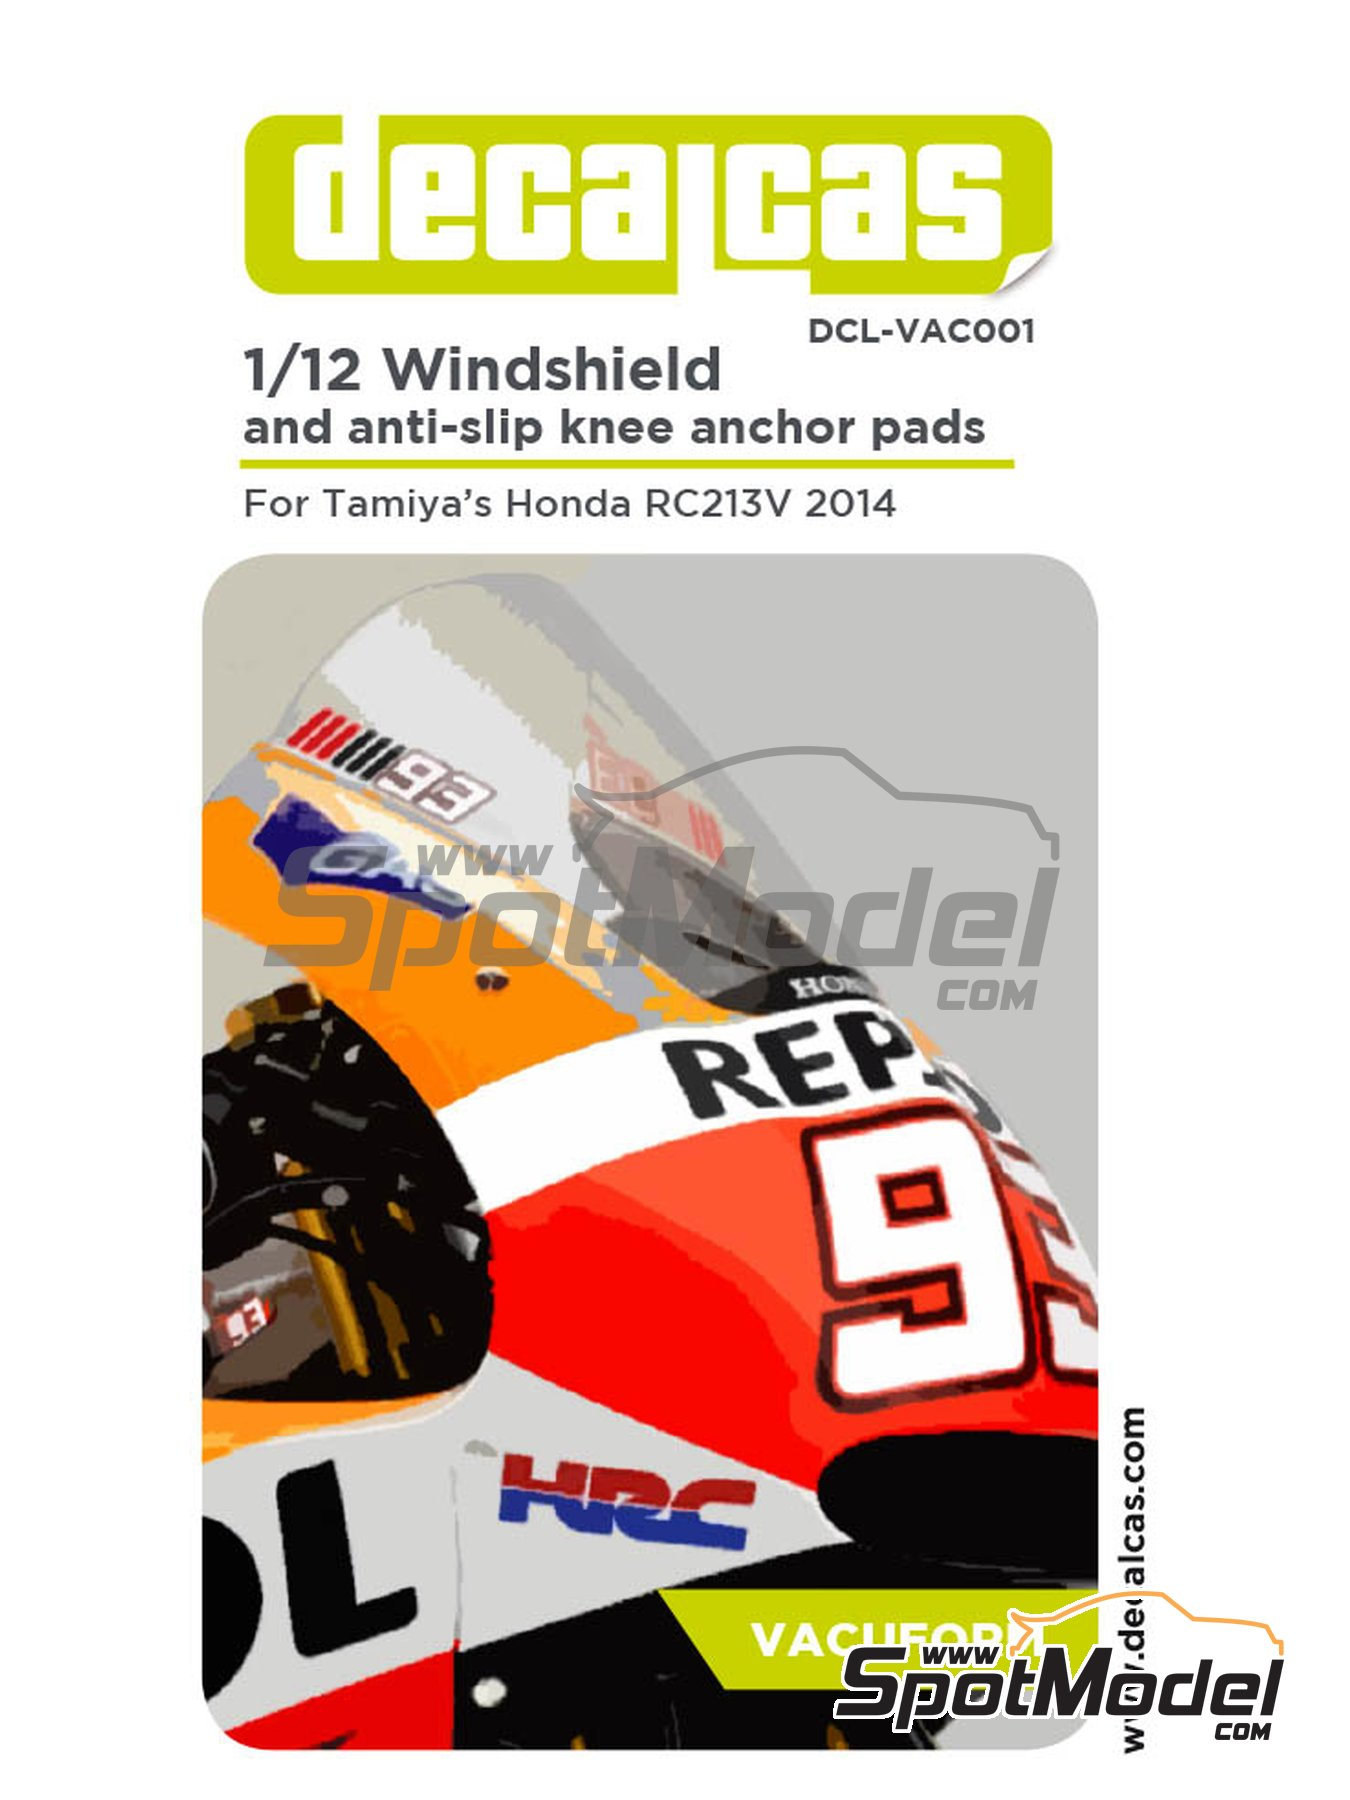 Honda RC213V | Vacuum formed parts in 1/12 scale manufactured by Decalcas (ref.DCL-VAC001) image